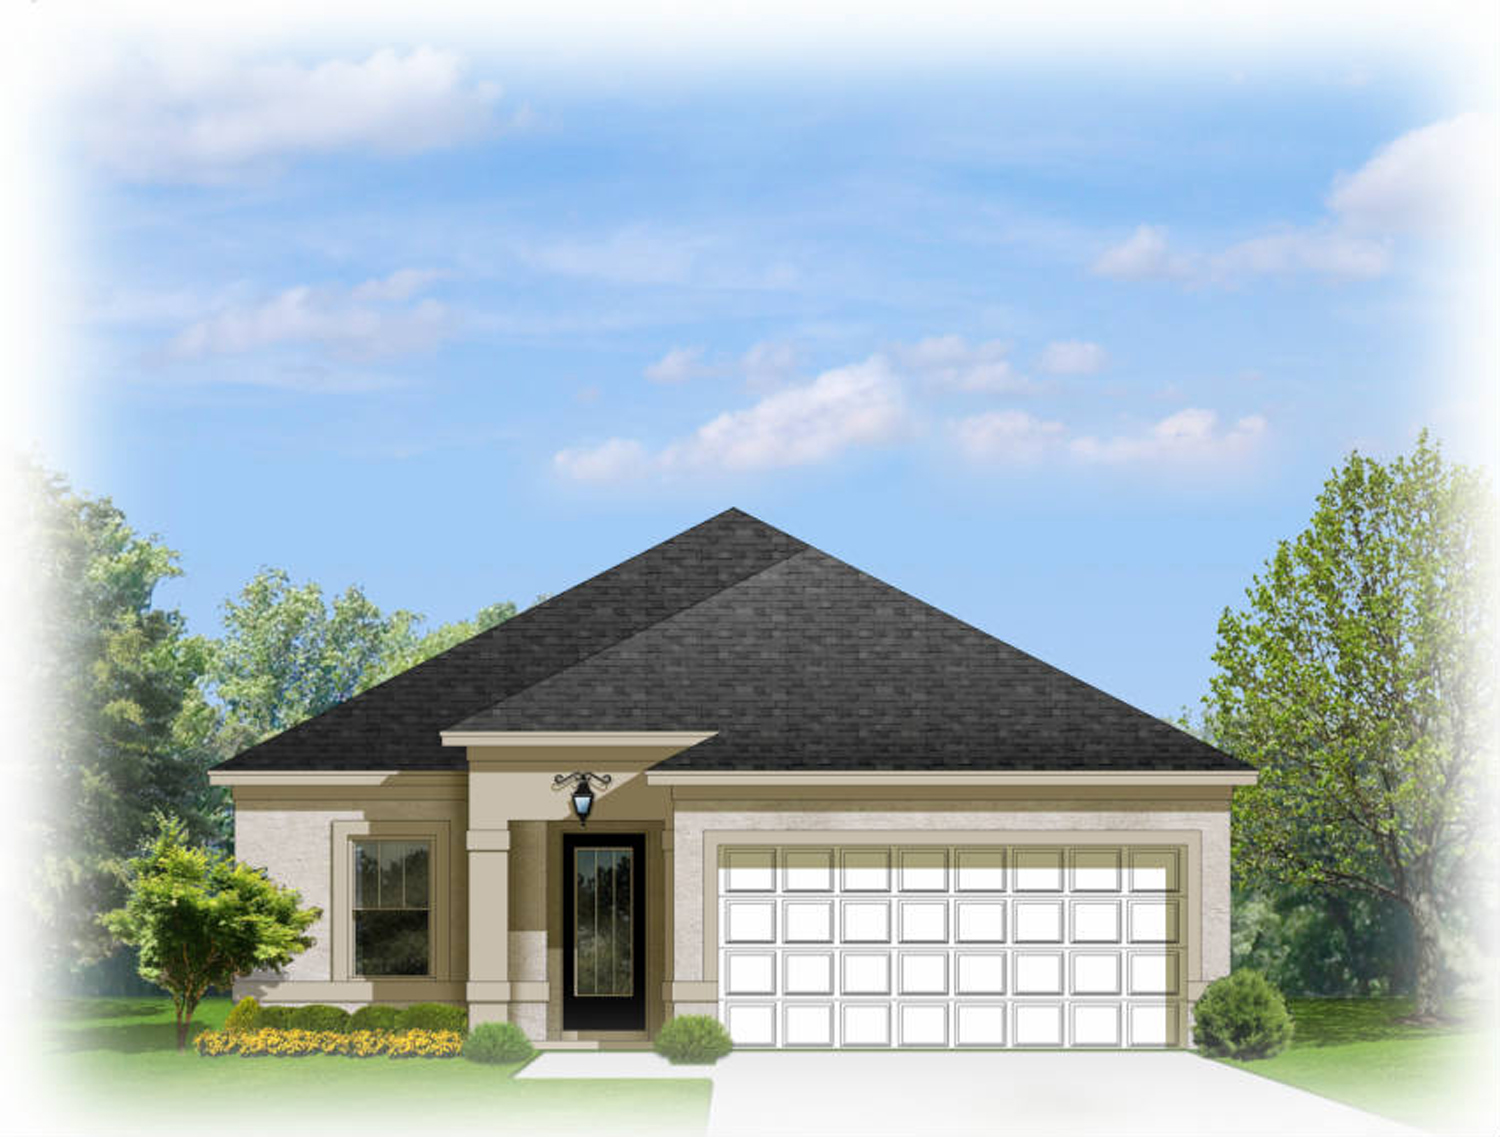 Downsize or a starter home 82081ka architectural for Downsize home plans